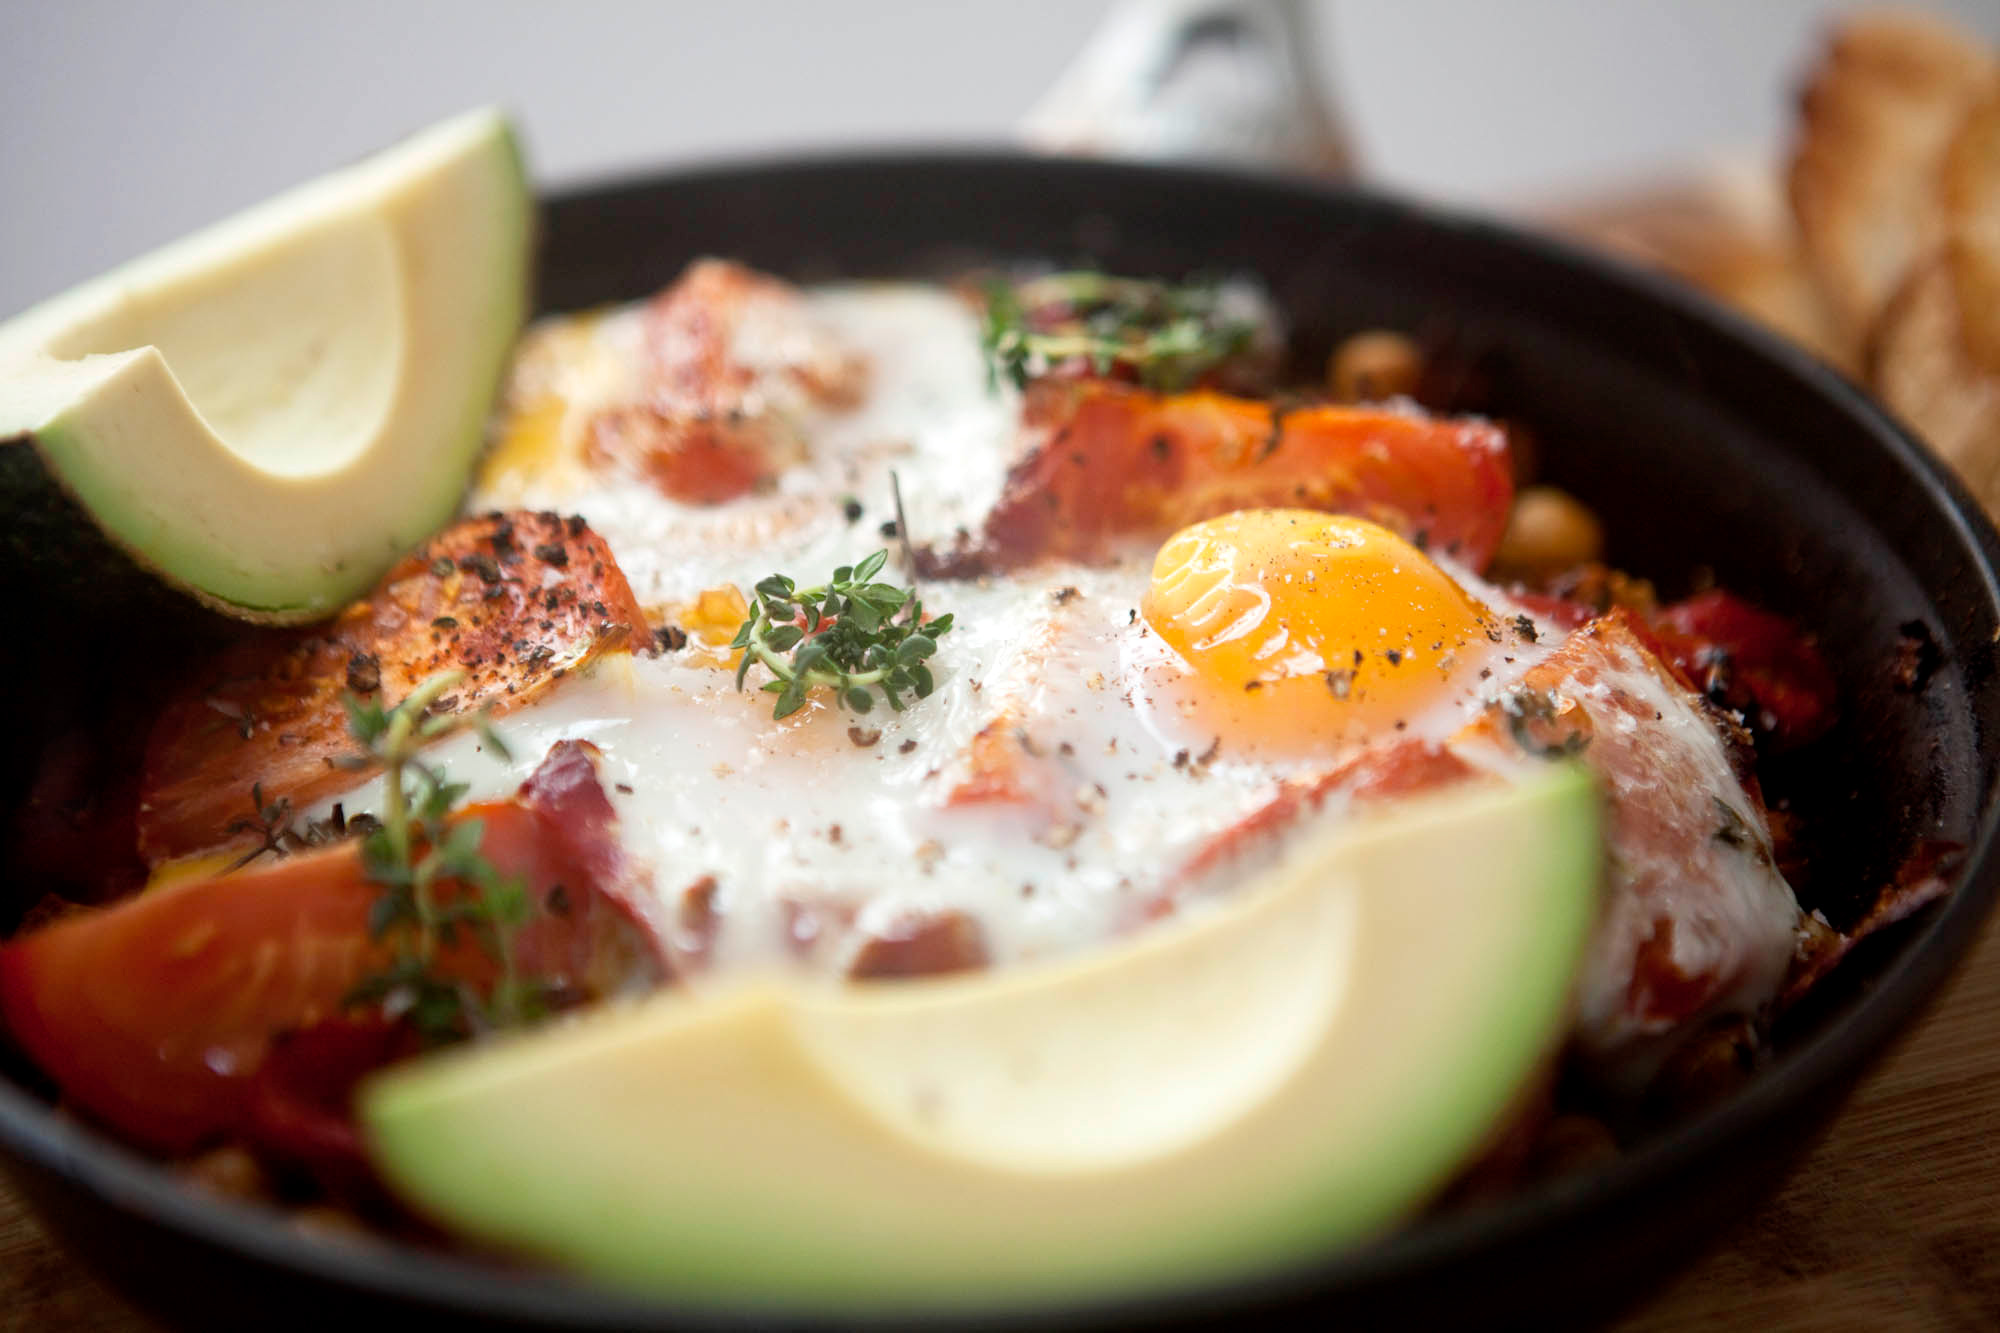 Chickpea, Tomato, and Roasted Red Pepper Skillet Breakfast